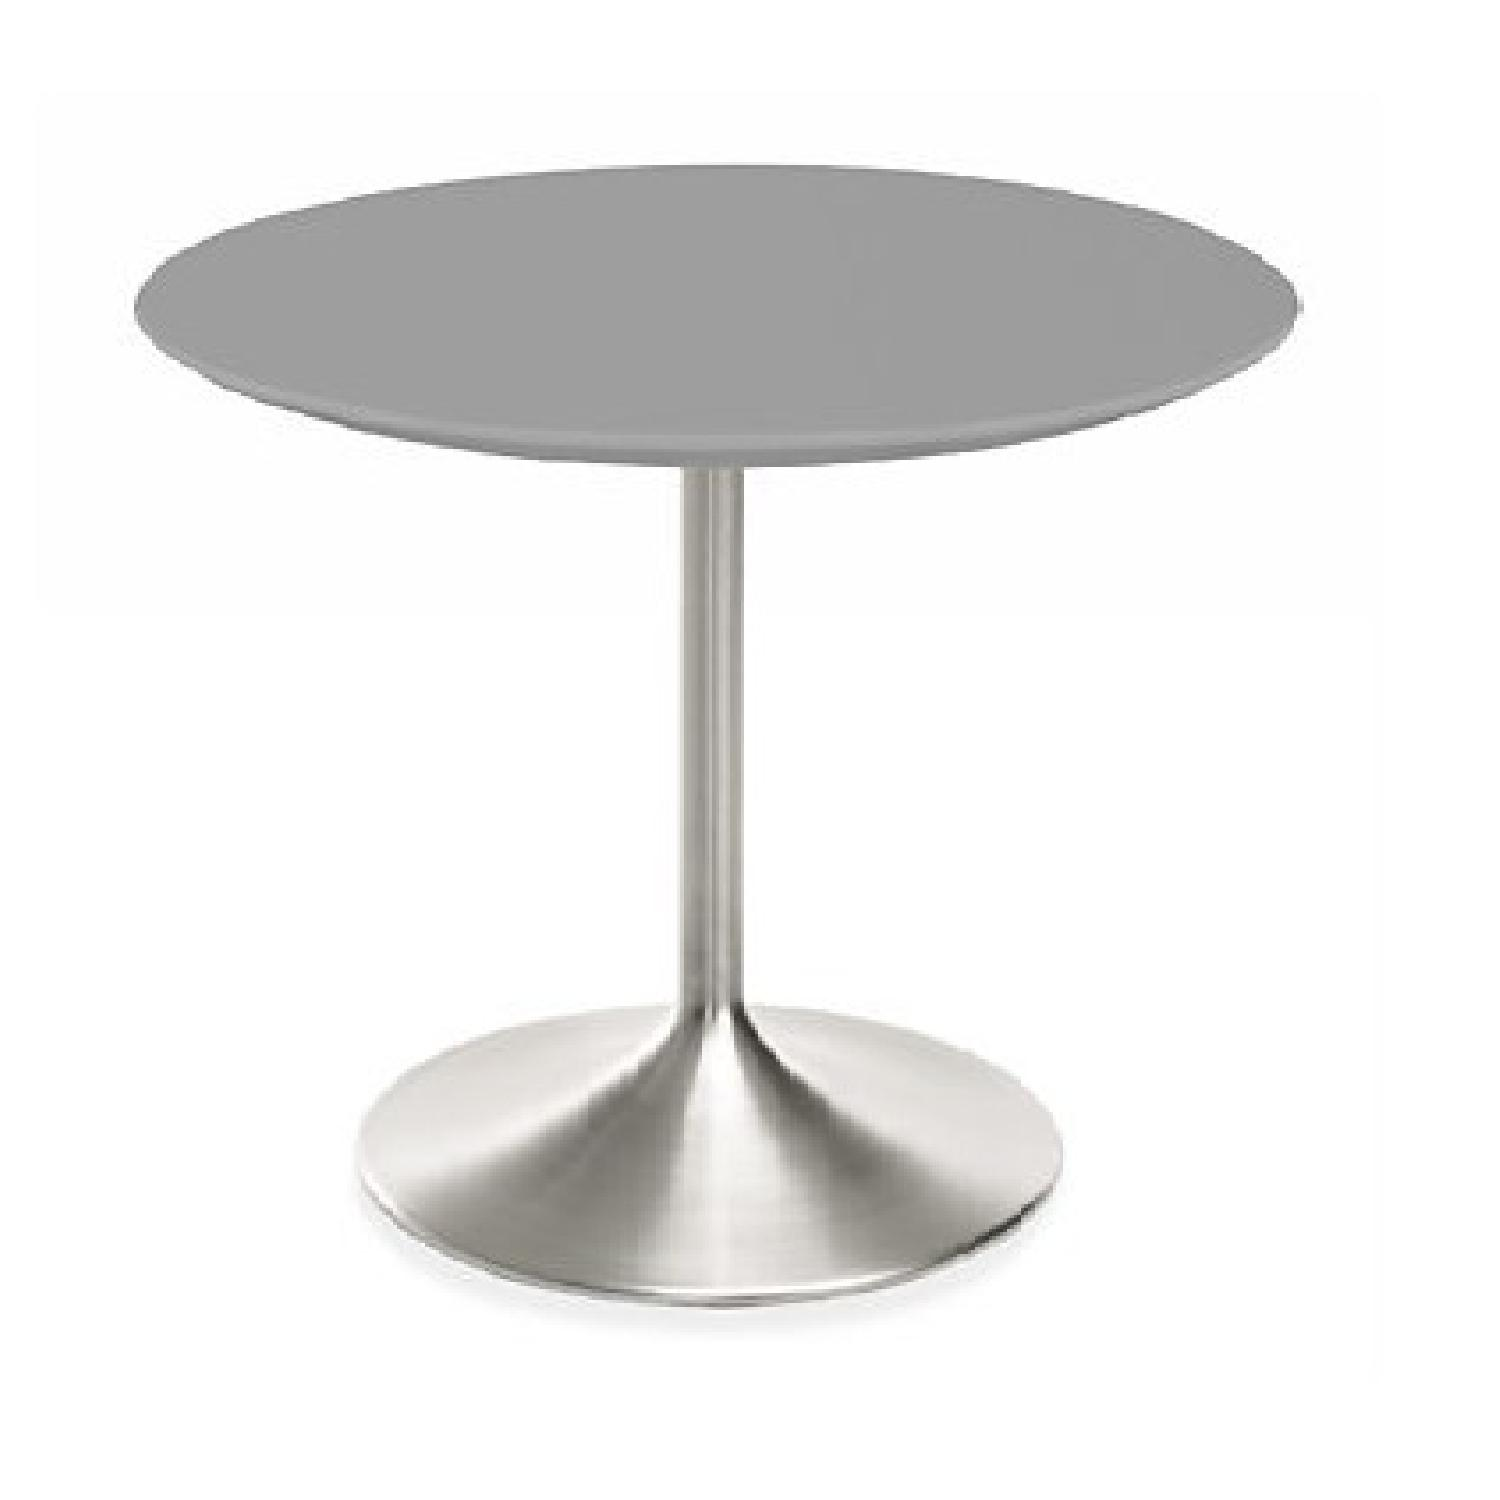 Room U0026 Board Aria Saarinen Inspired Tulip Table ...